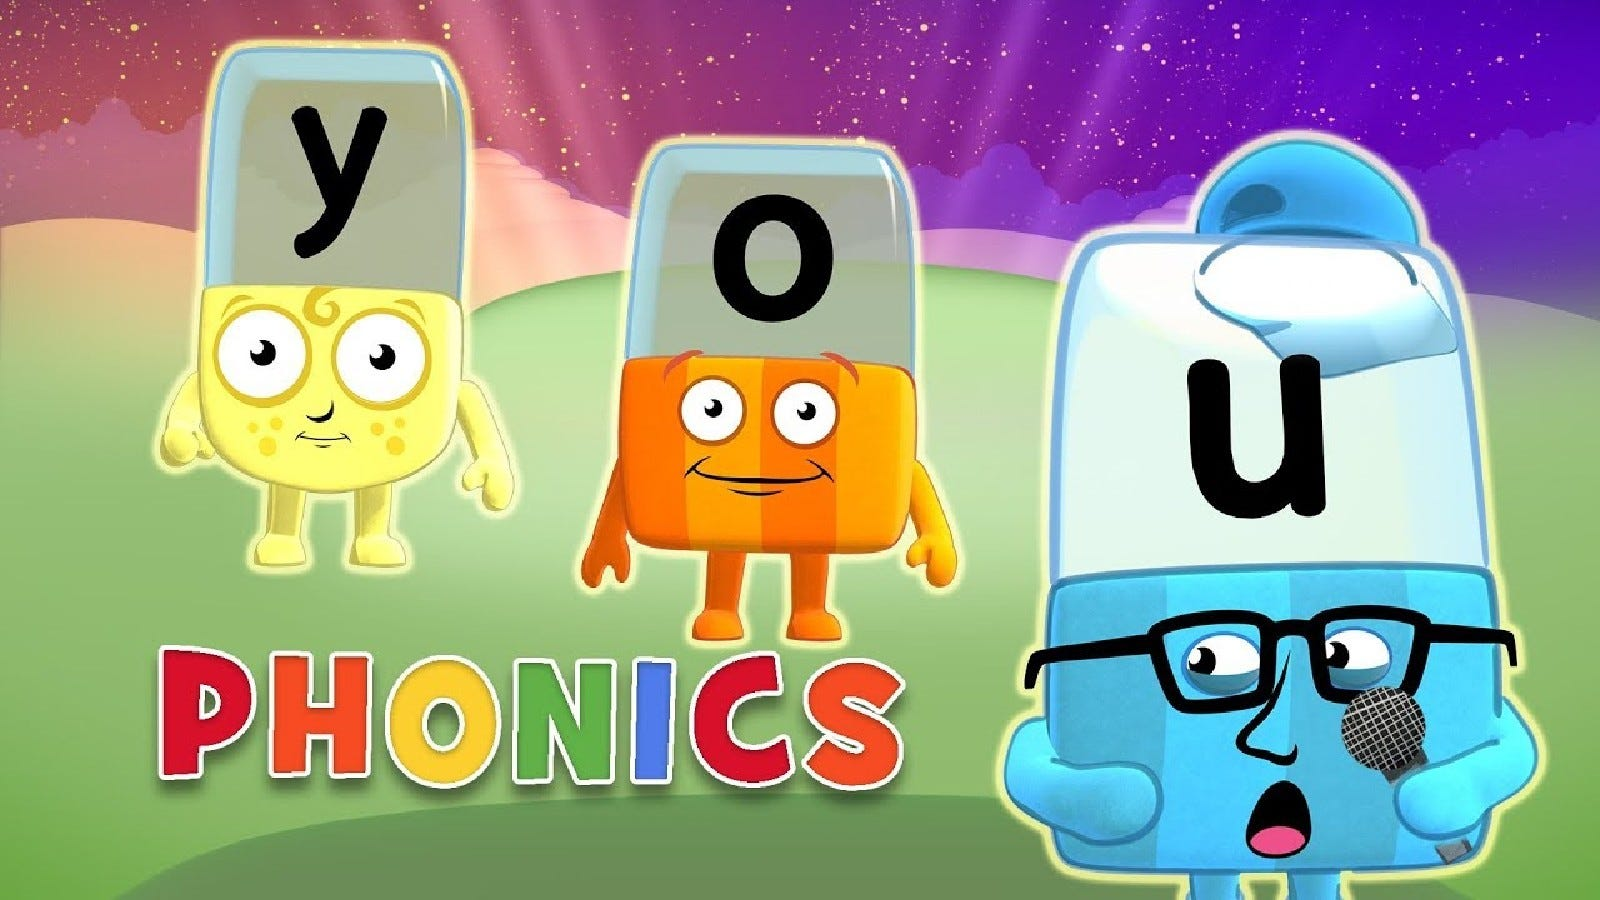 Promotional image for Alphablocks, depicting the blocks practicing phonics.